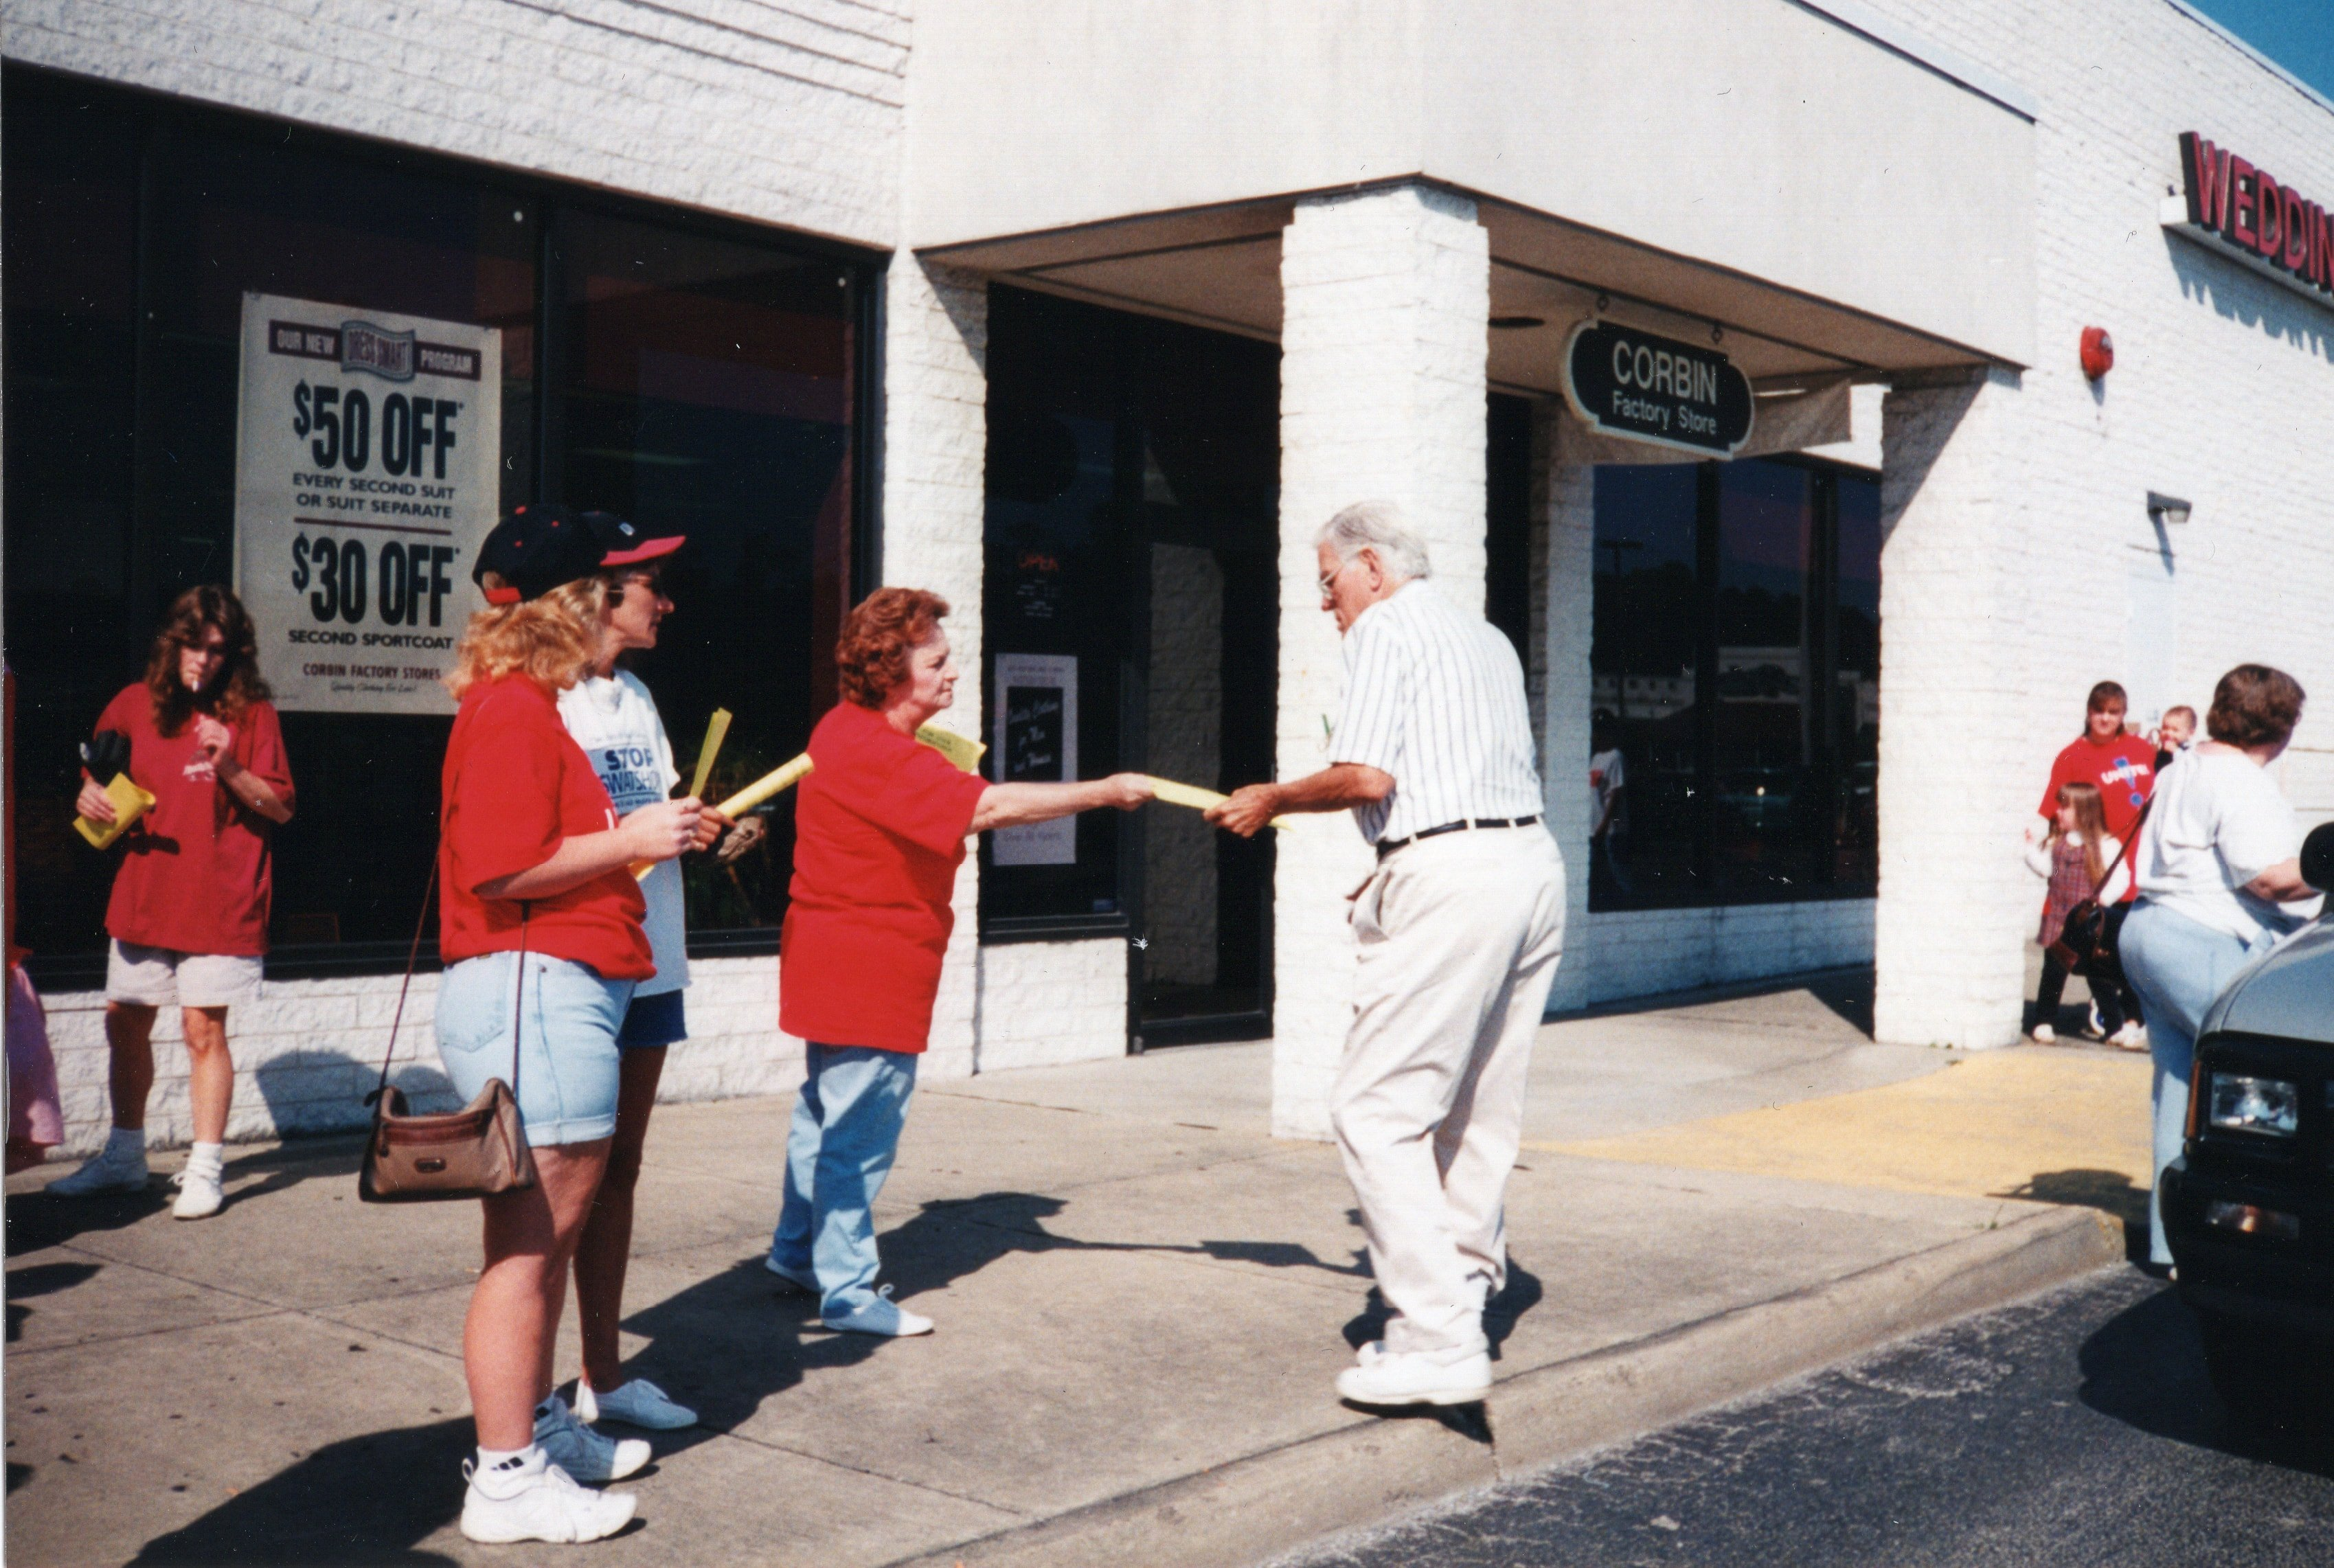 Frances Jackson, Local UNITE Union President, UNITE Union Protest against NAFTA and loss of jobs at Corbin Ltd. Factory Store at Huntington Mall, Barboursville, WV, 1996